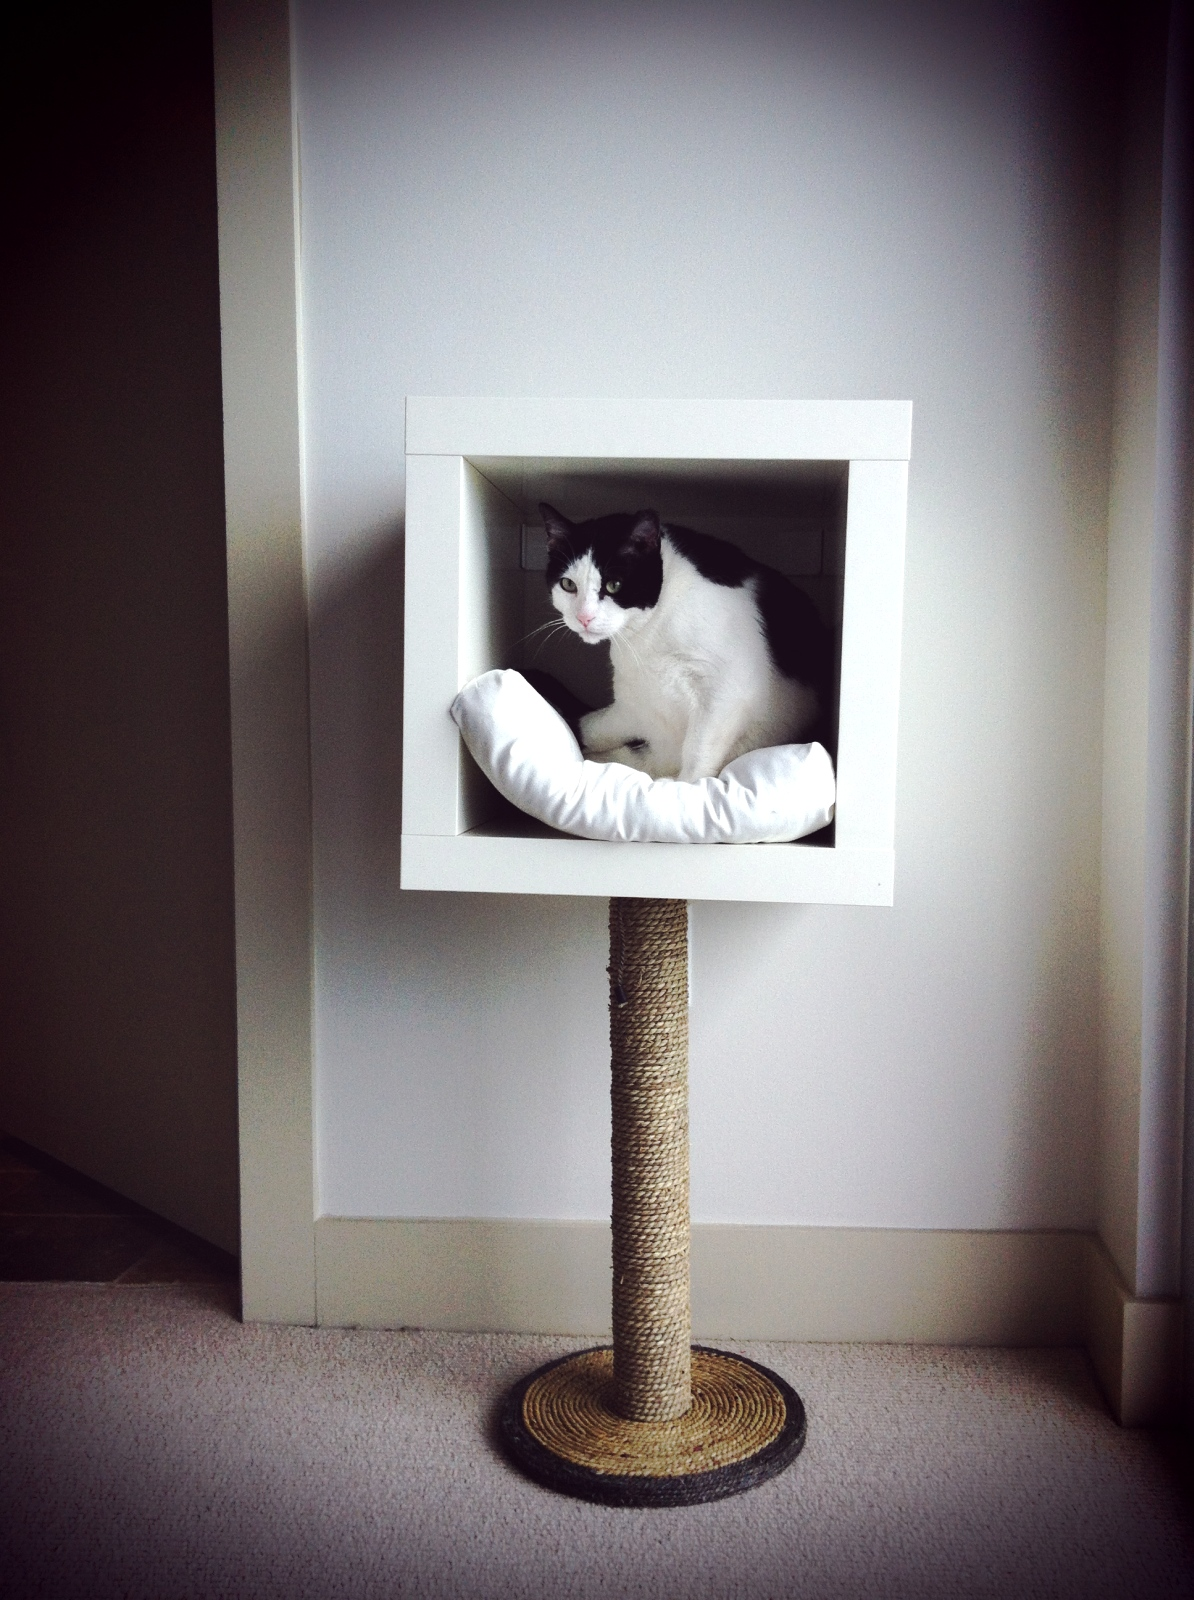 Deviant housewife ikea hack modern cat bed - Contemporary cat furniture ideas ...